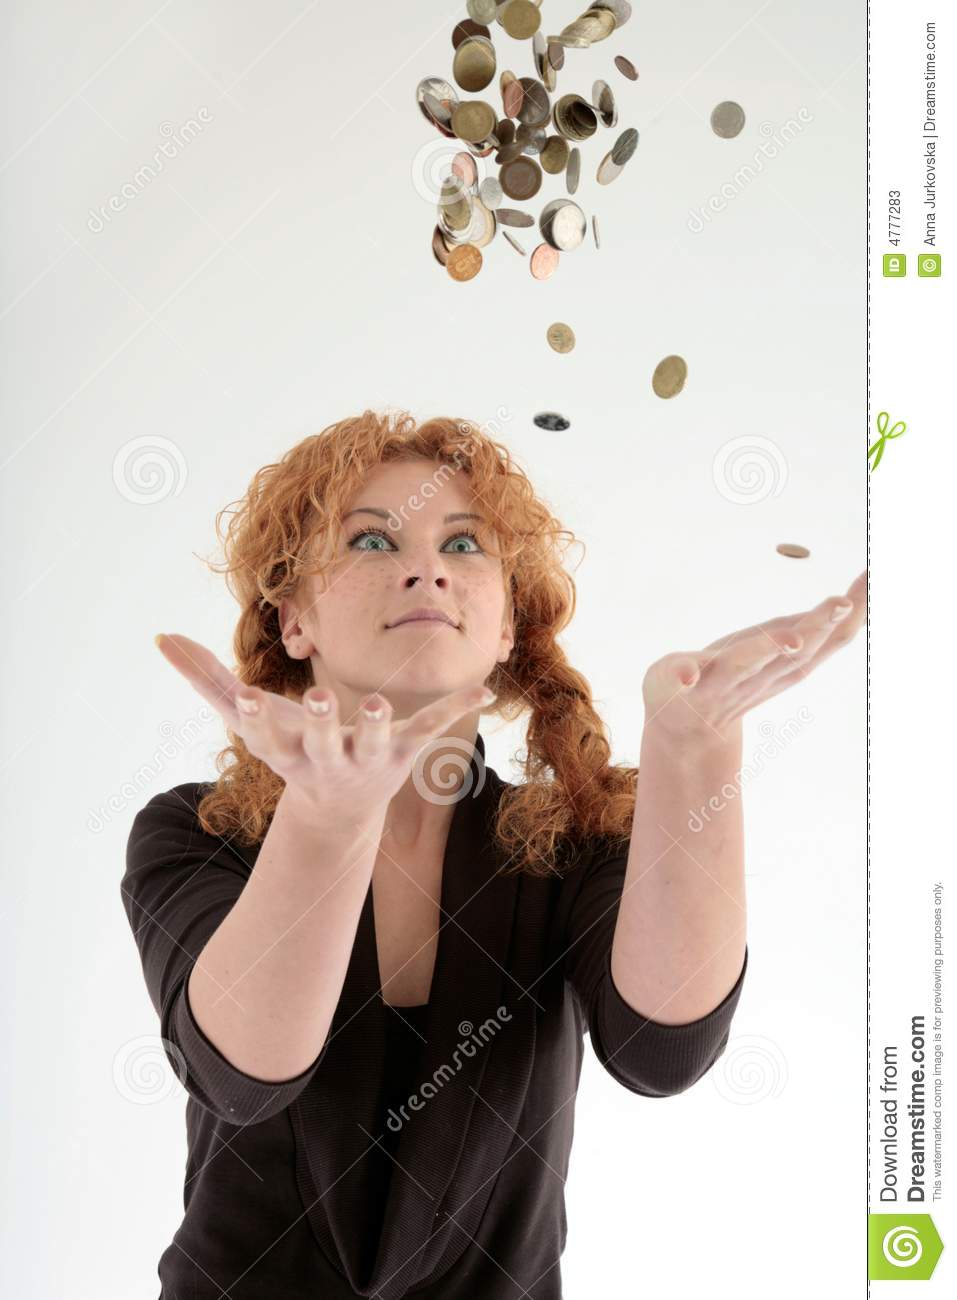 Girl Throwing Coins Into Air Stock Image Image Of